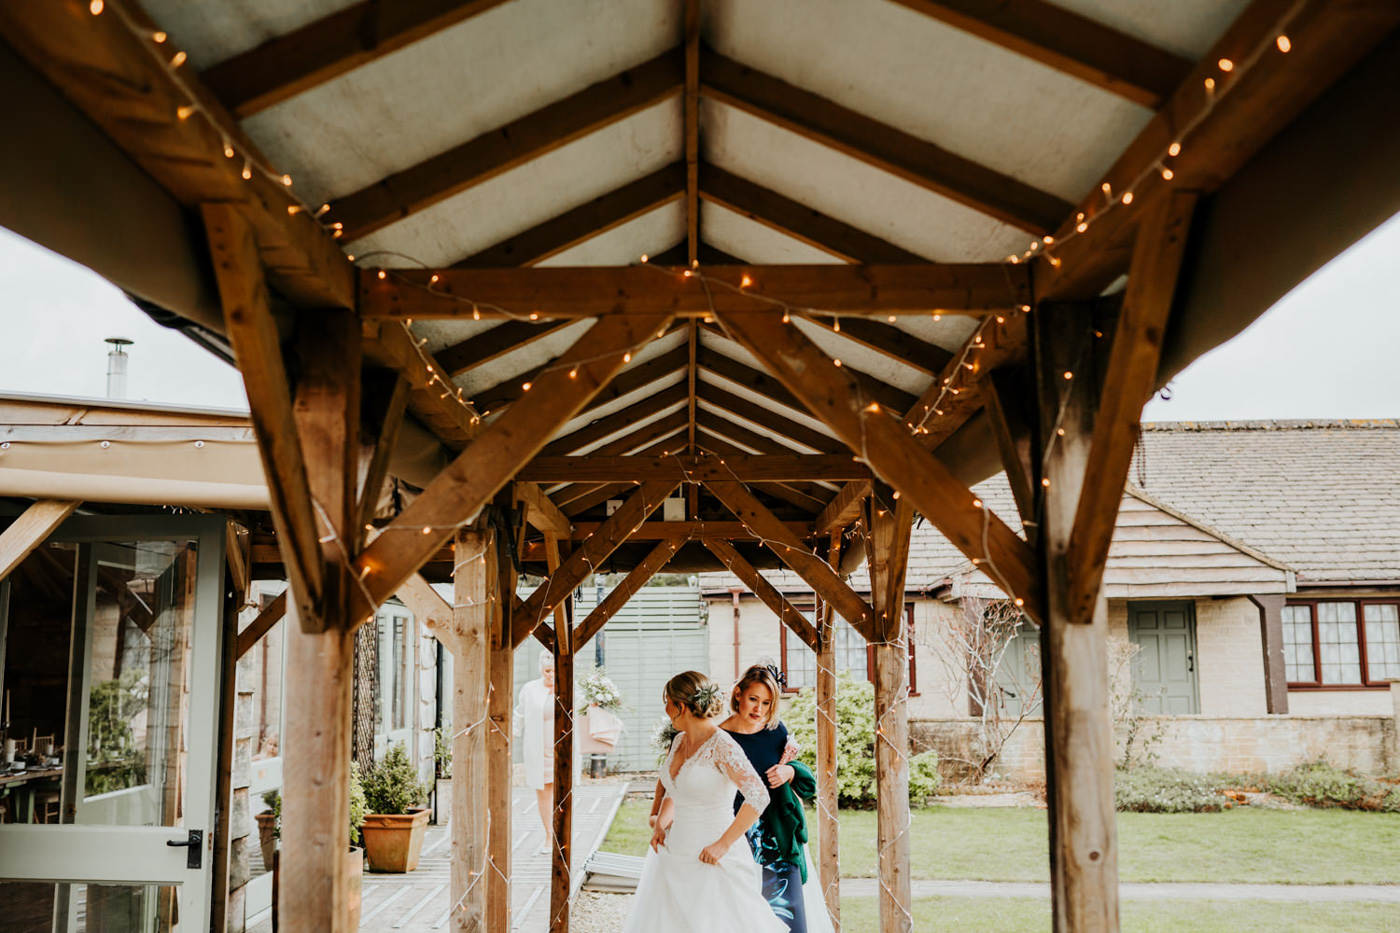 Emily and Rich, Moonraker Hotel, Wiltshire 39